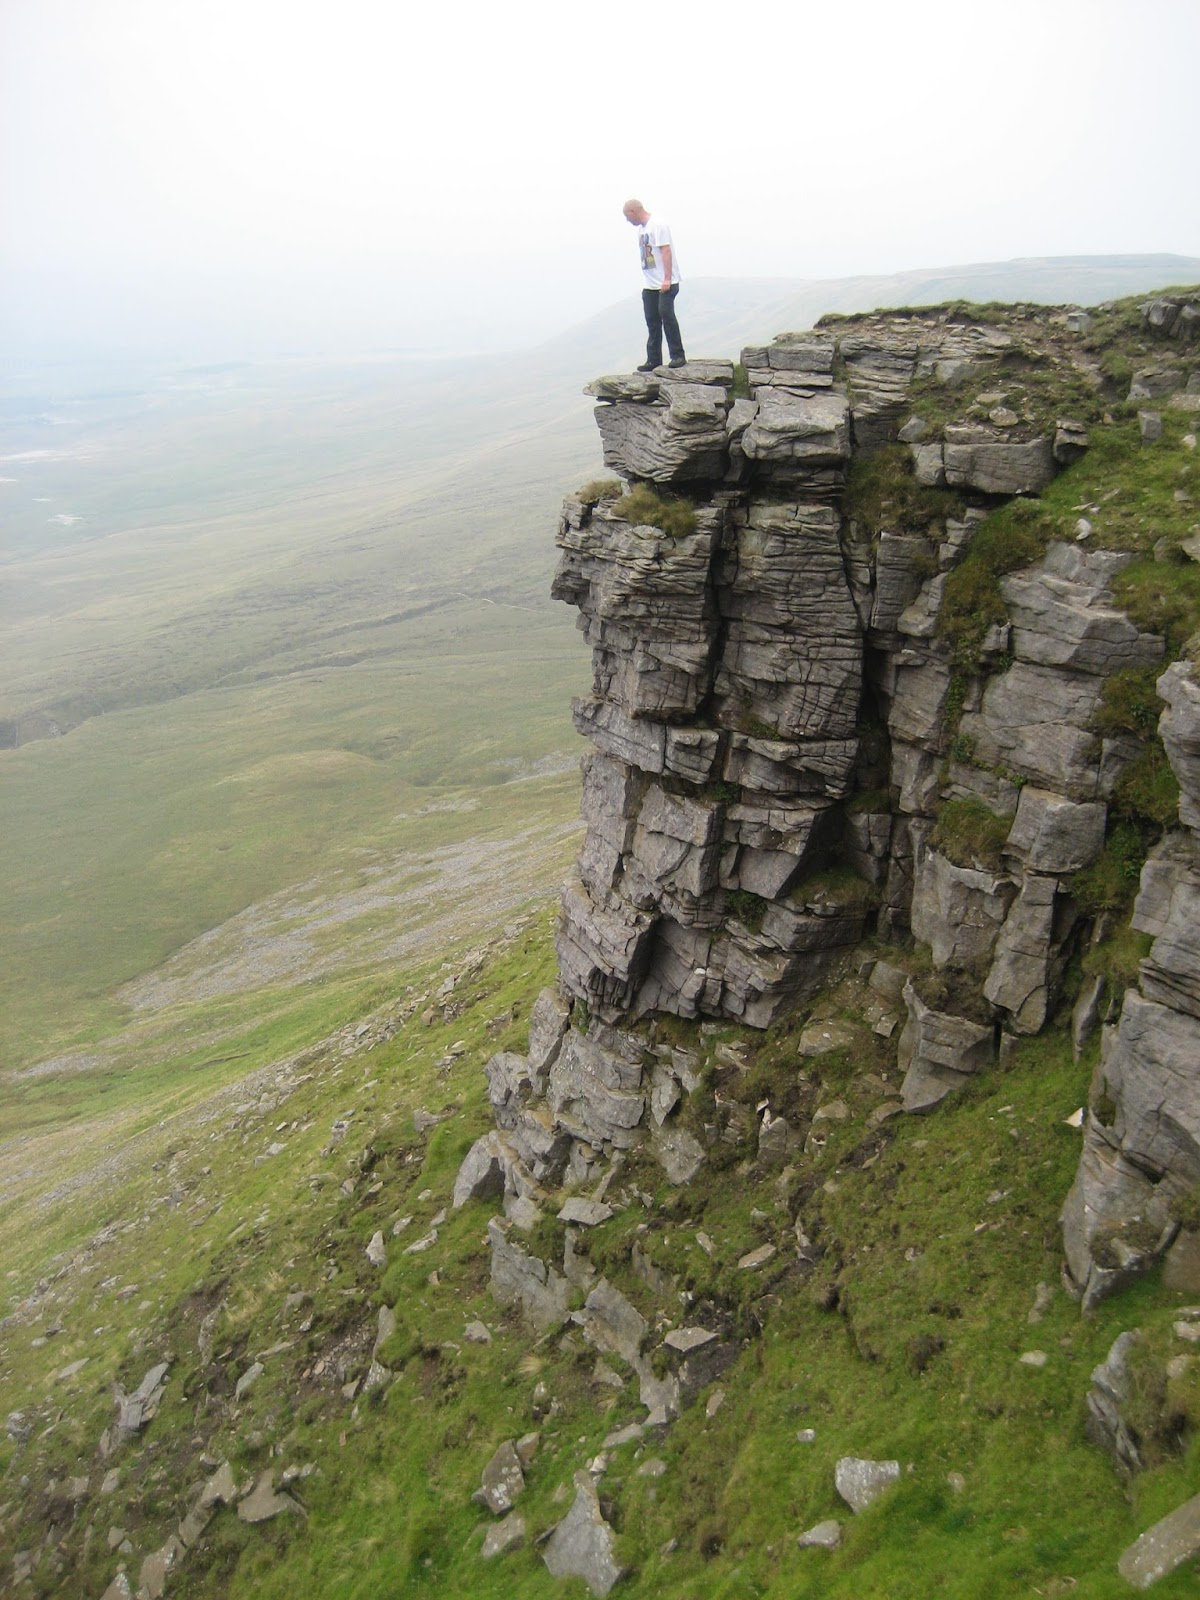 Standing on the highest sandstone ridge within the Yoredale series on Ingleborough. Stephen Oldfield